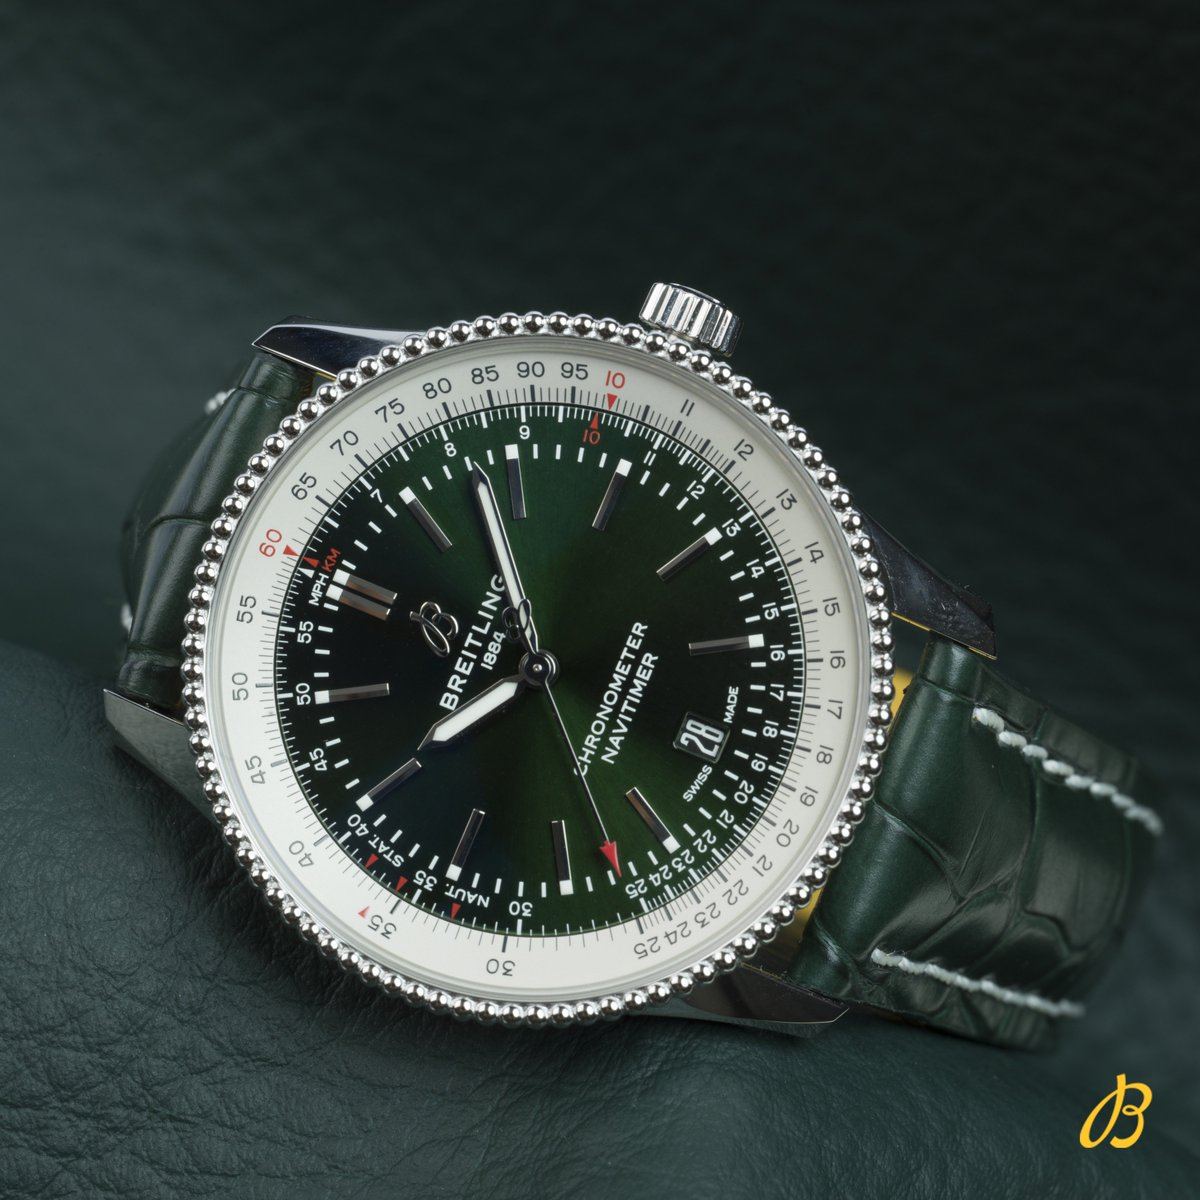 Stunning green dial for the Navitimer 1 Automatic 41 Middle East Limited Edition. The watch is limited to 250 pieces and now available accross the region. #breitling #navitimer #middleeast <br>http://pic.twitter.com/0FSJtxRd94